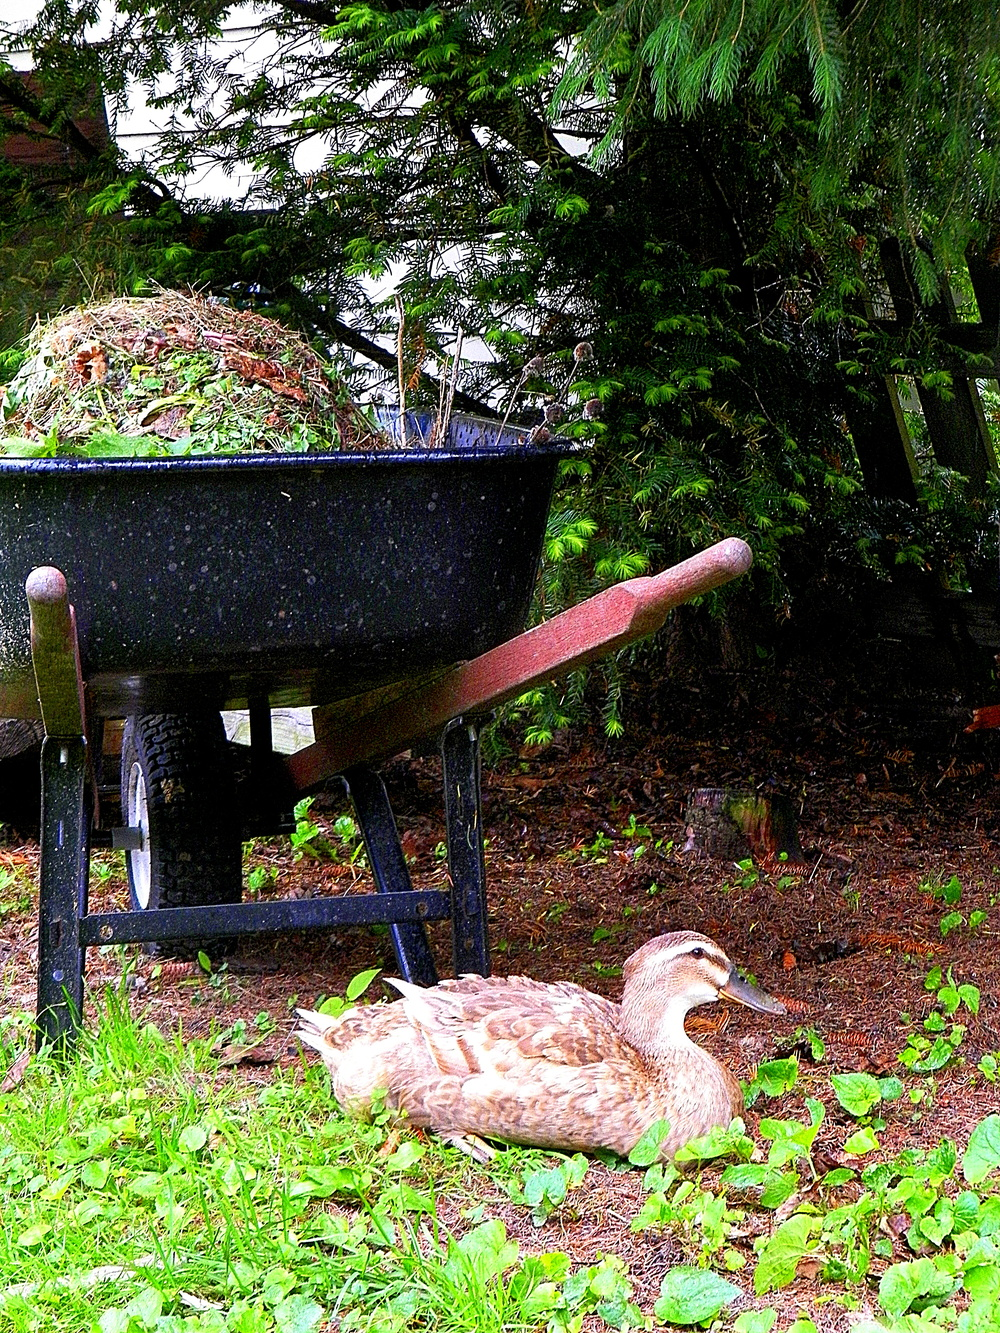 Duck under wheelbarrow